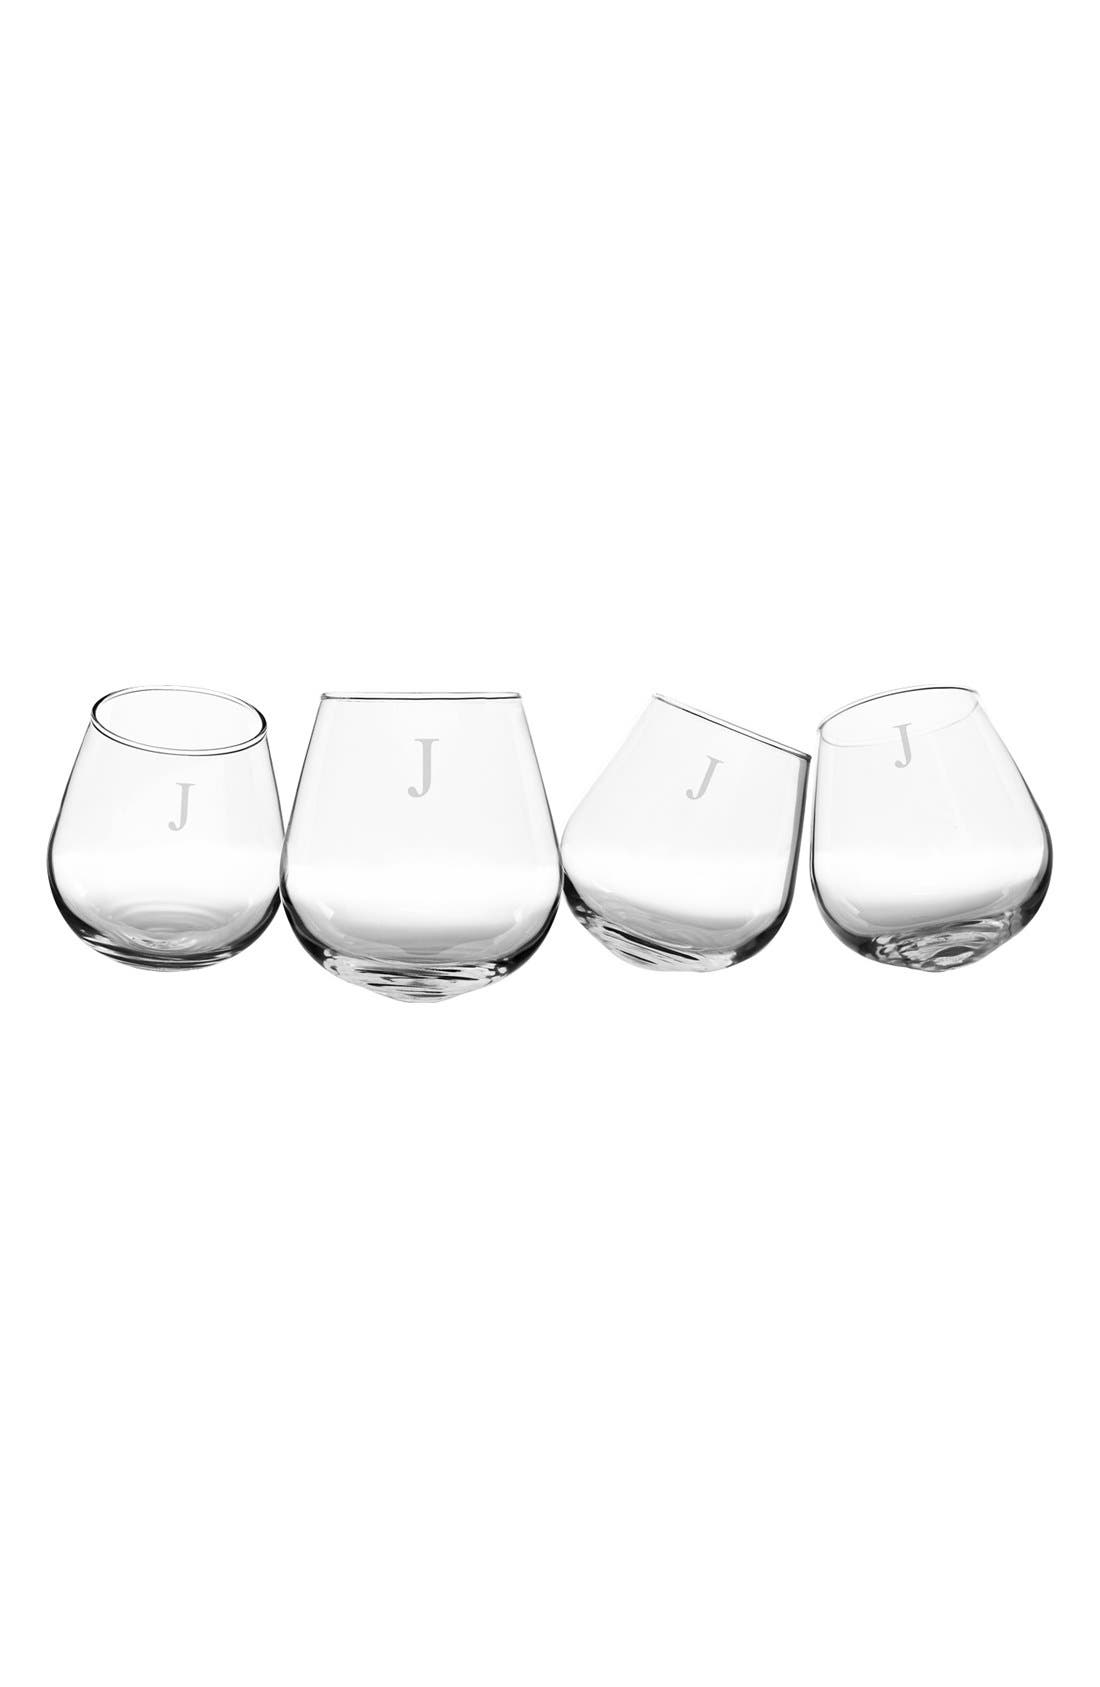 Alternate Image 1 Selected - Cathy's Concepts Monogram Tipsy Set of 4 Wine Glasses